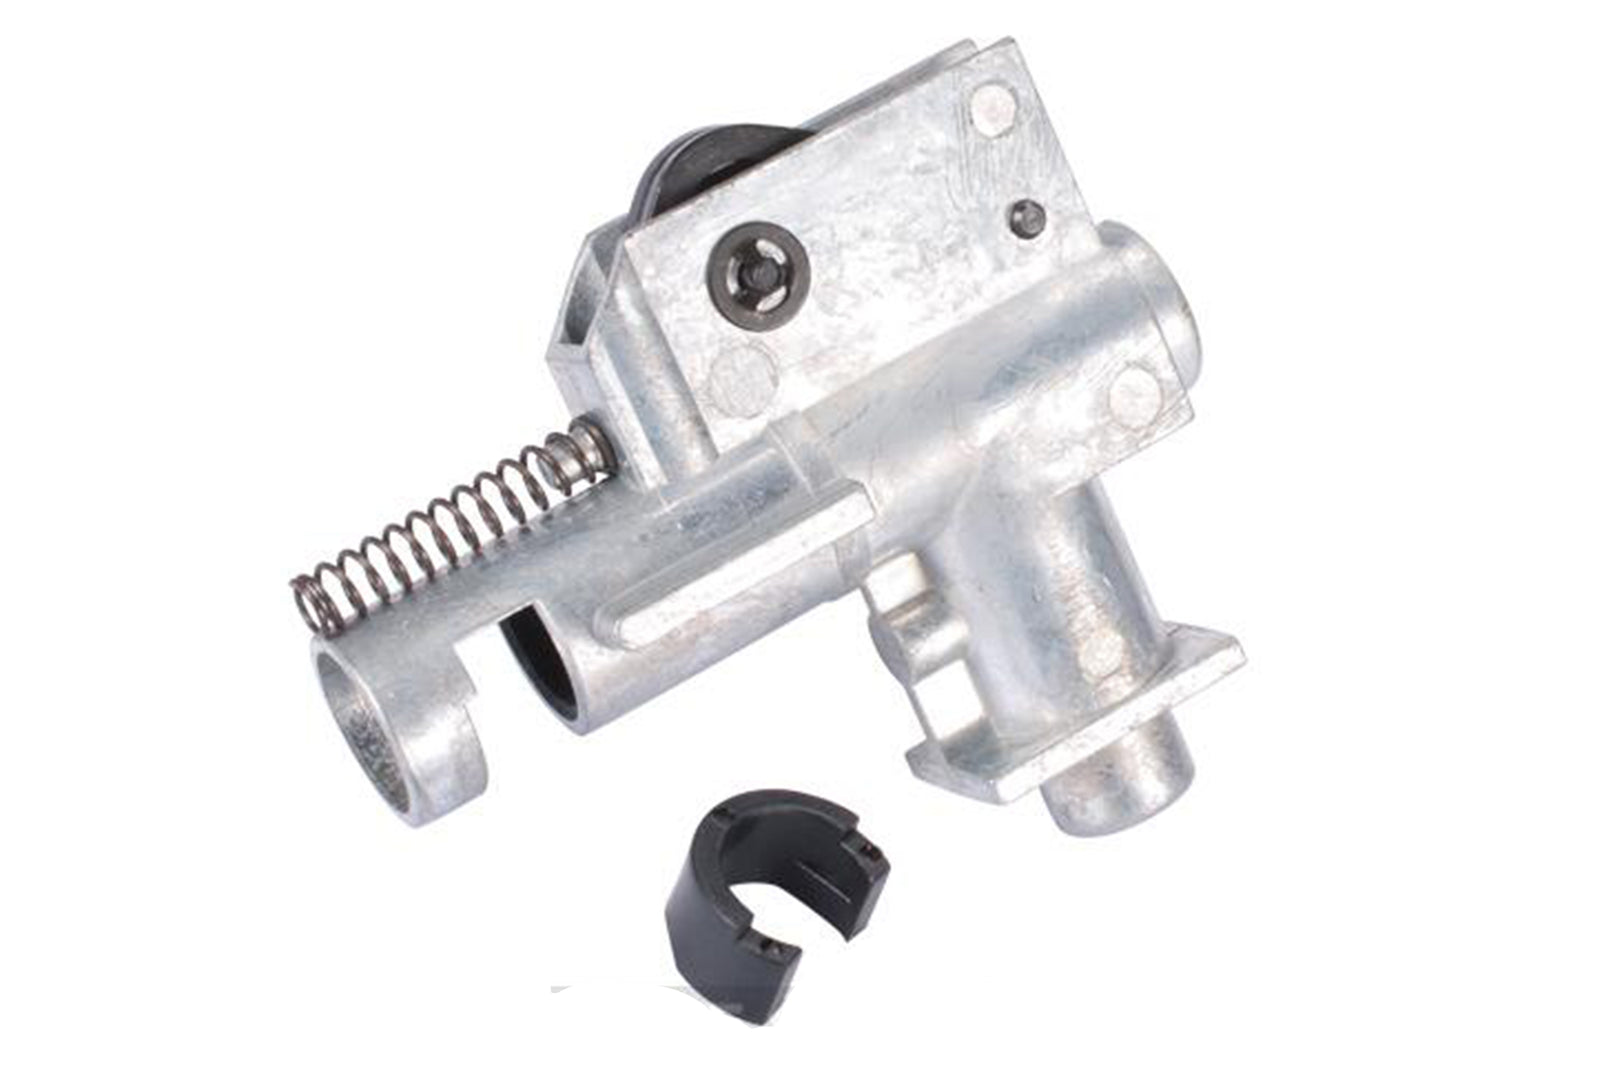 CYMA One Piece Metal Hopup Chamber Set for M4 M16 Series AEG